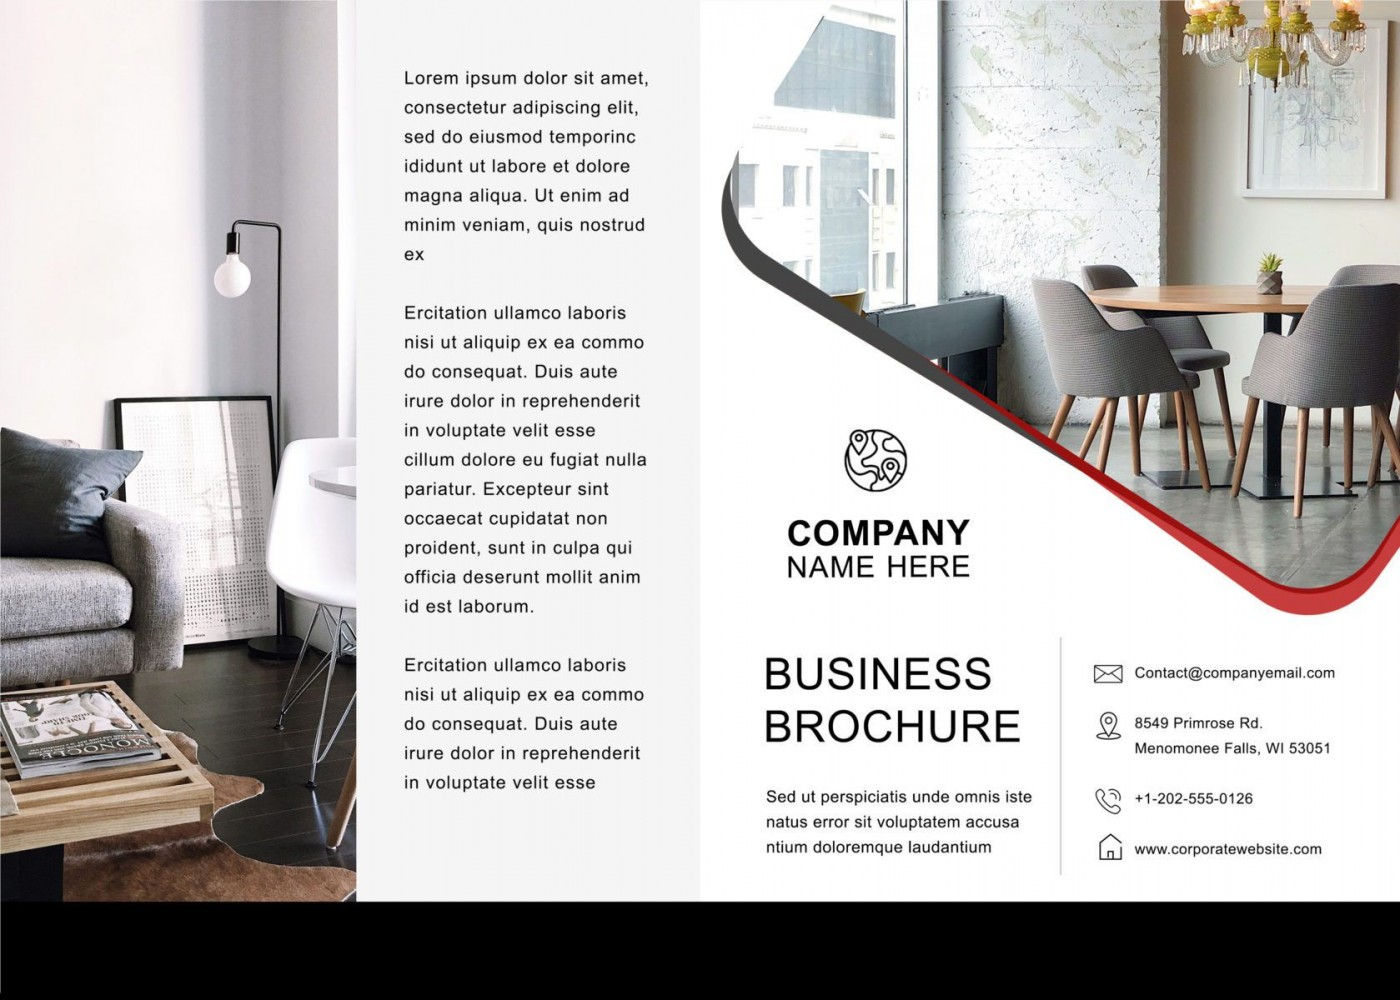 004 Outstanding Brochure Template Free Download Photo  For Word 2010 Microsoft Ppt1400